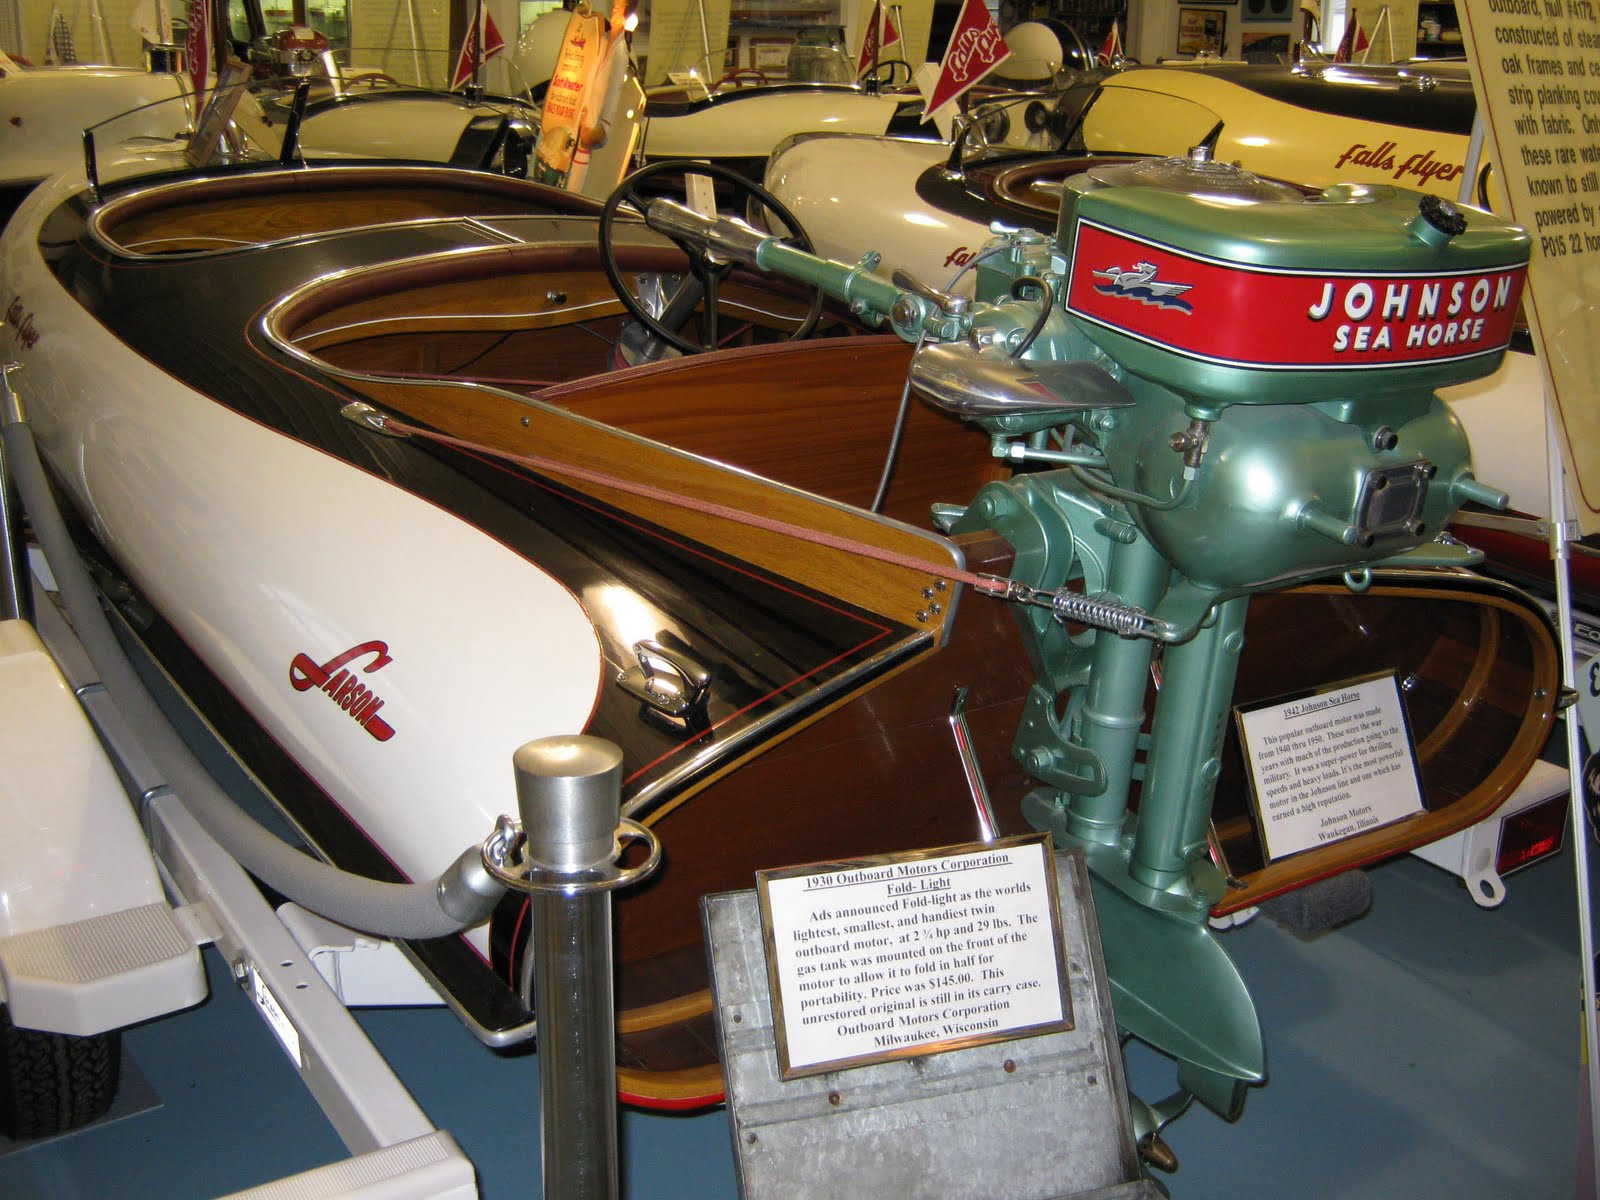 A Martin Model 200 20hp Twin Click Here To Read Brief History Of Outboard Motors Written By George Or Ask Paul Mikkelson When You Visit